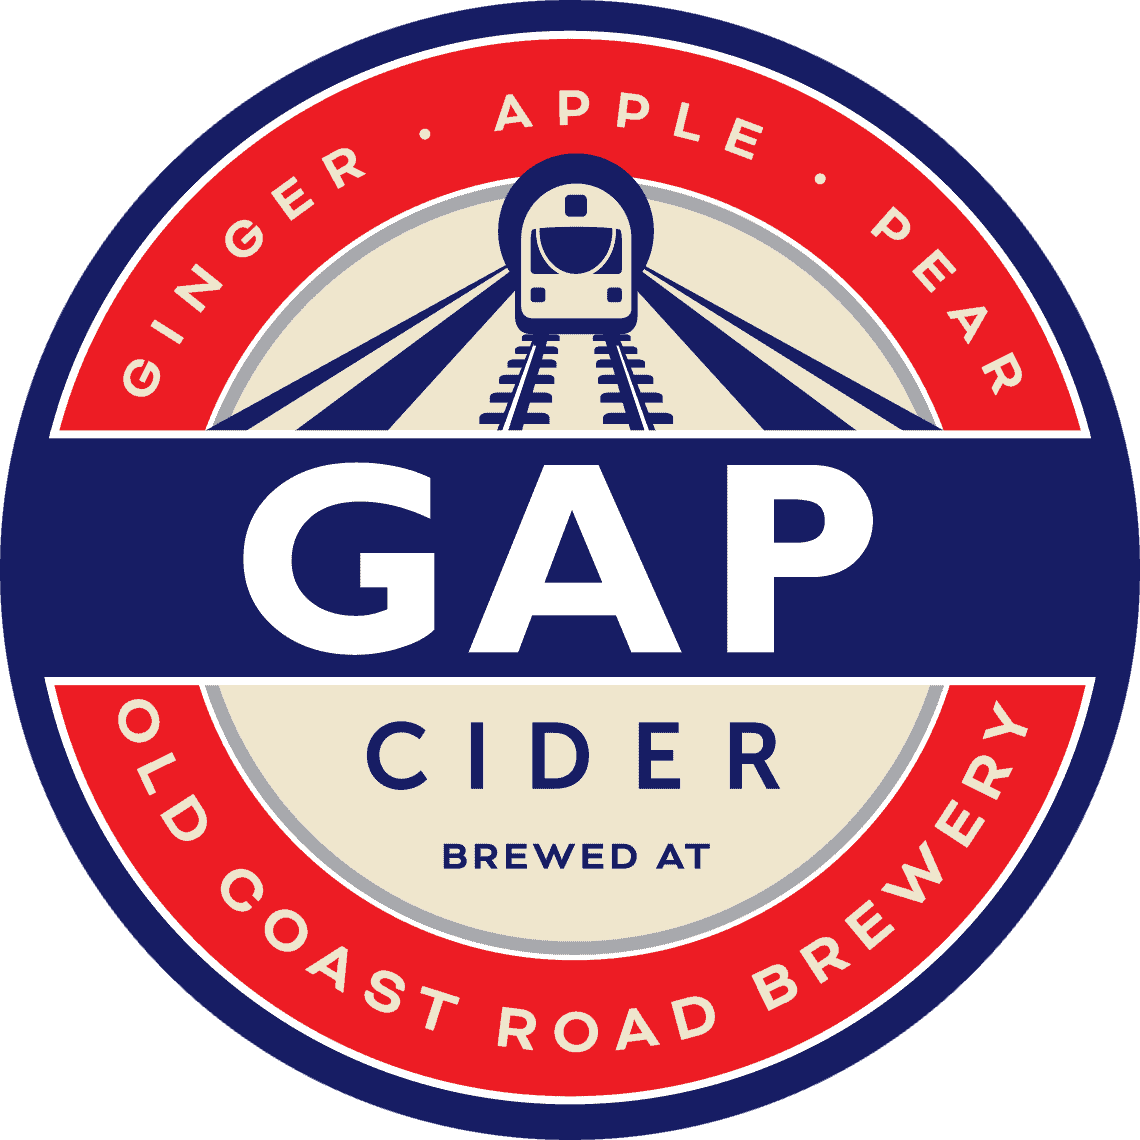 Our most popular cider. A unique blend of ginger, apple, and pear. If you like ginger you'll love this.